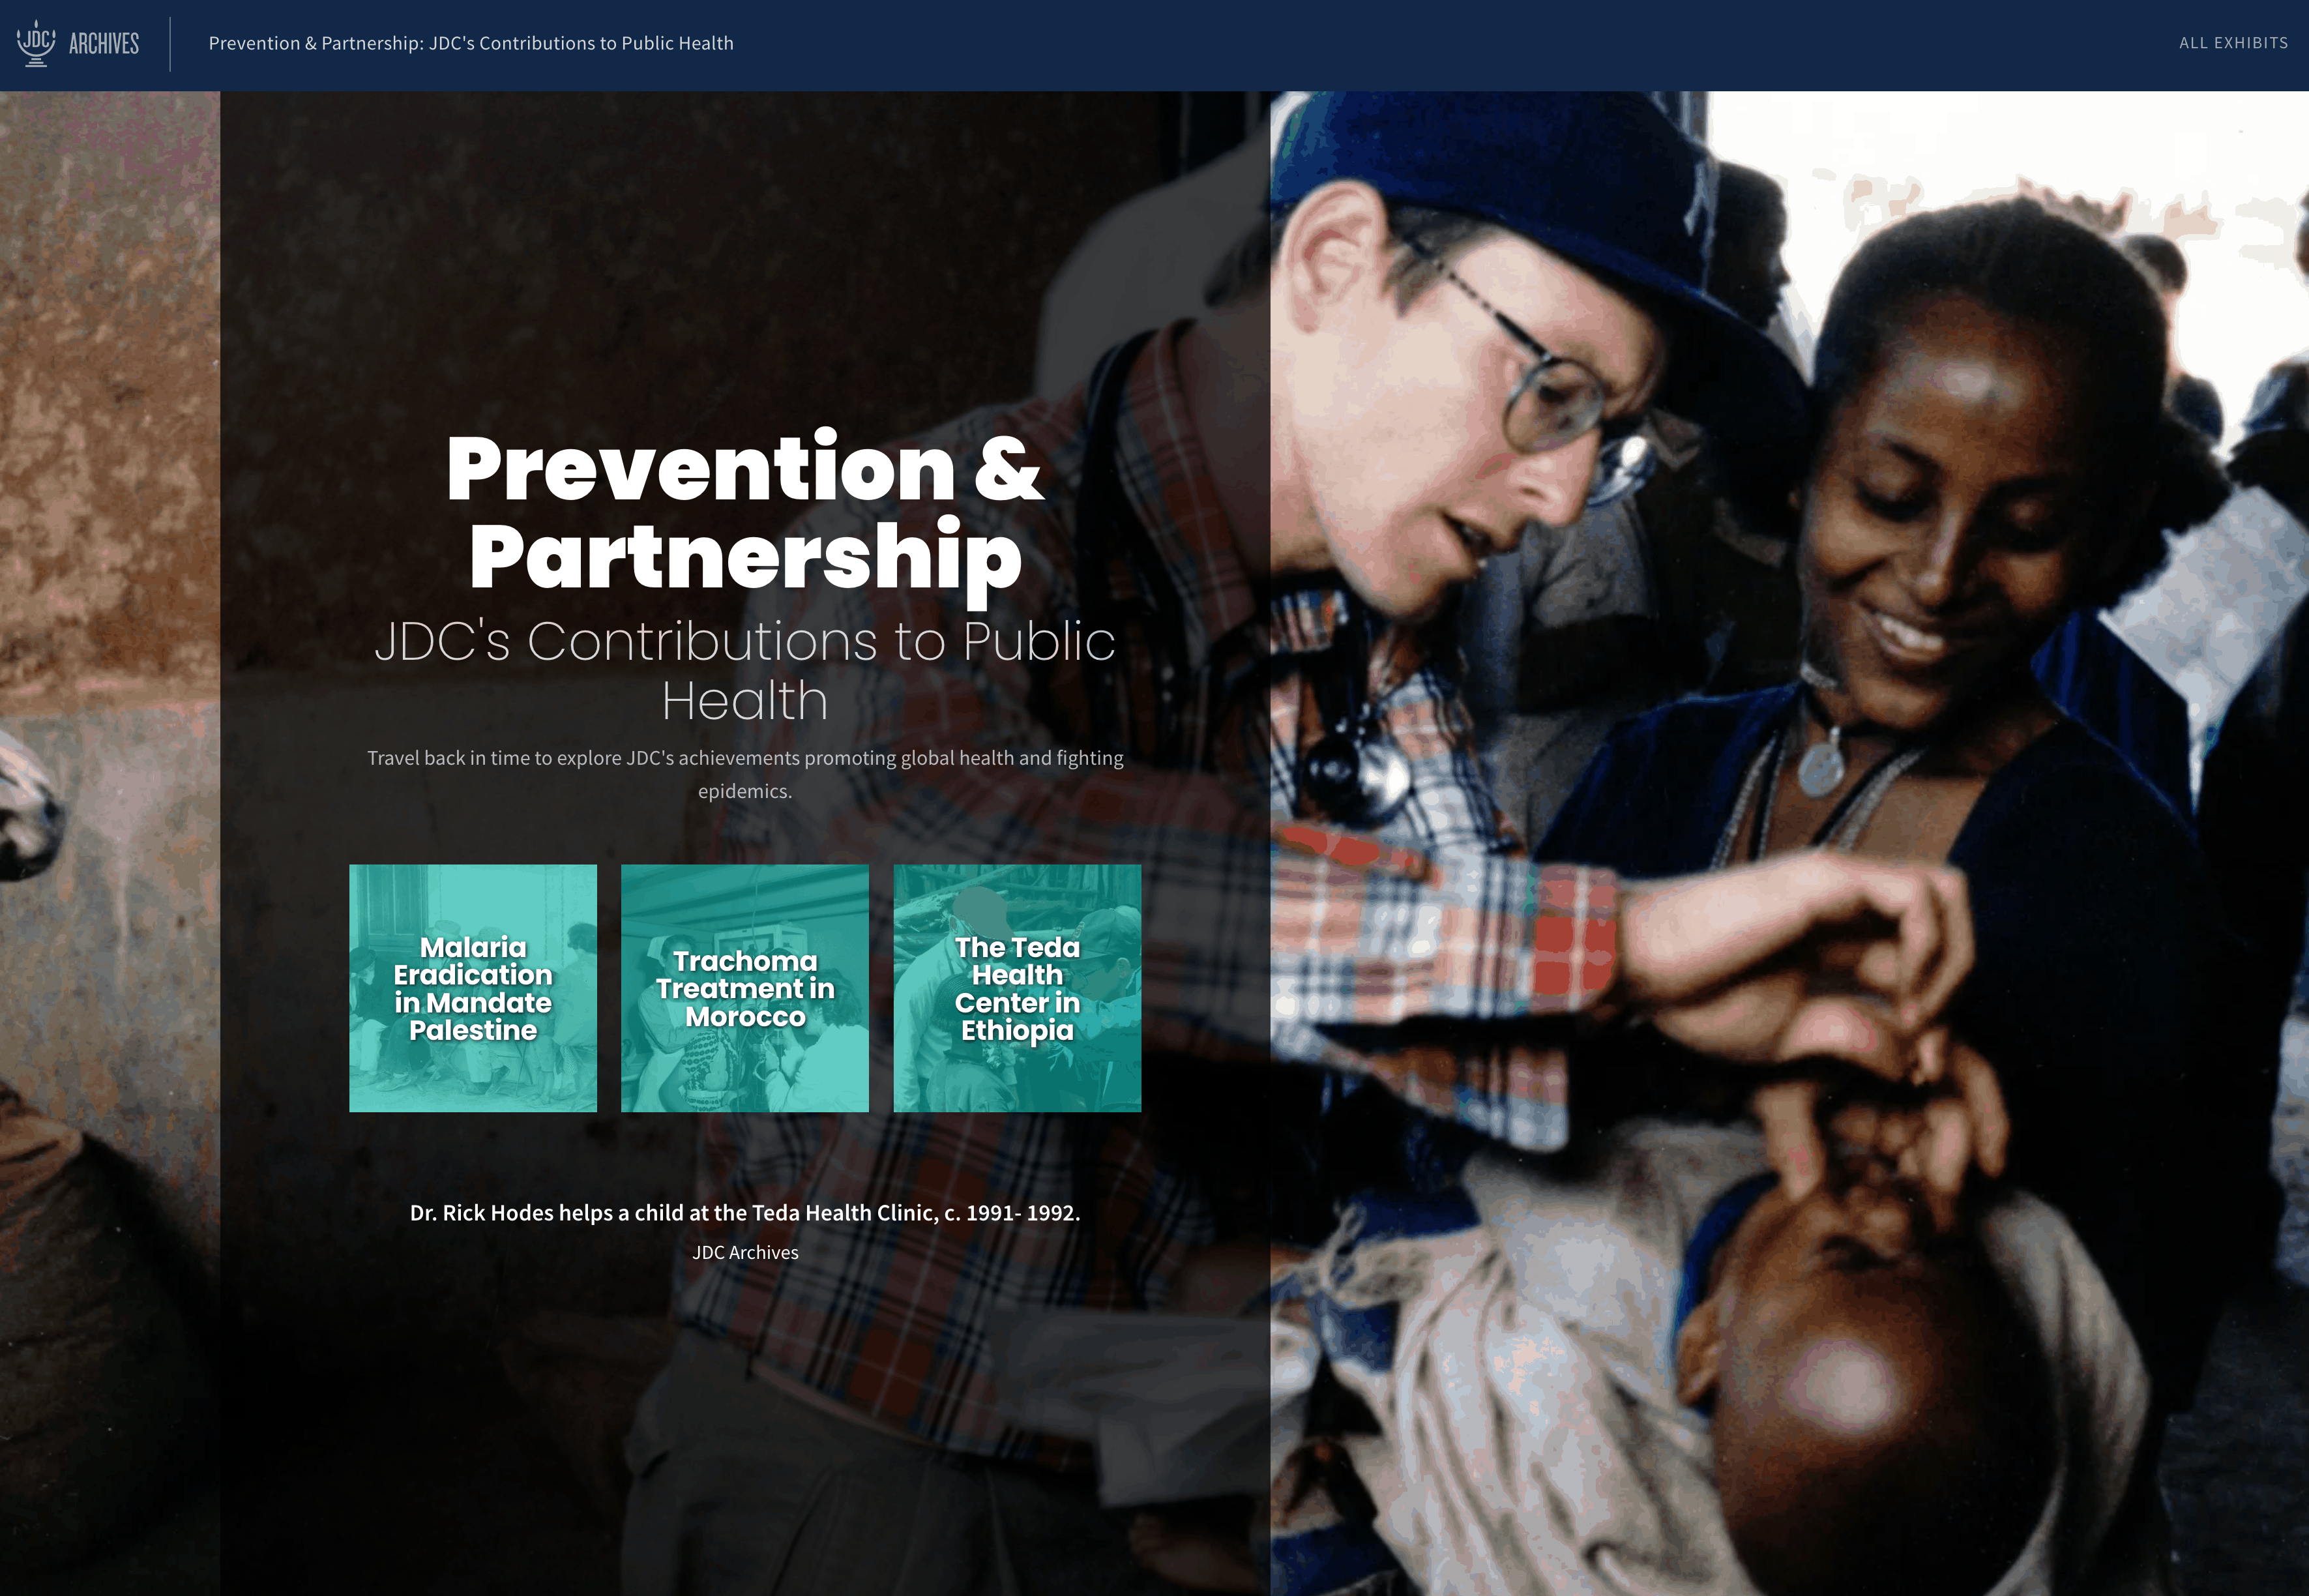 JDC's Contribution to Public Health